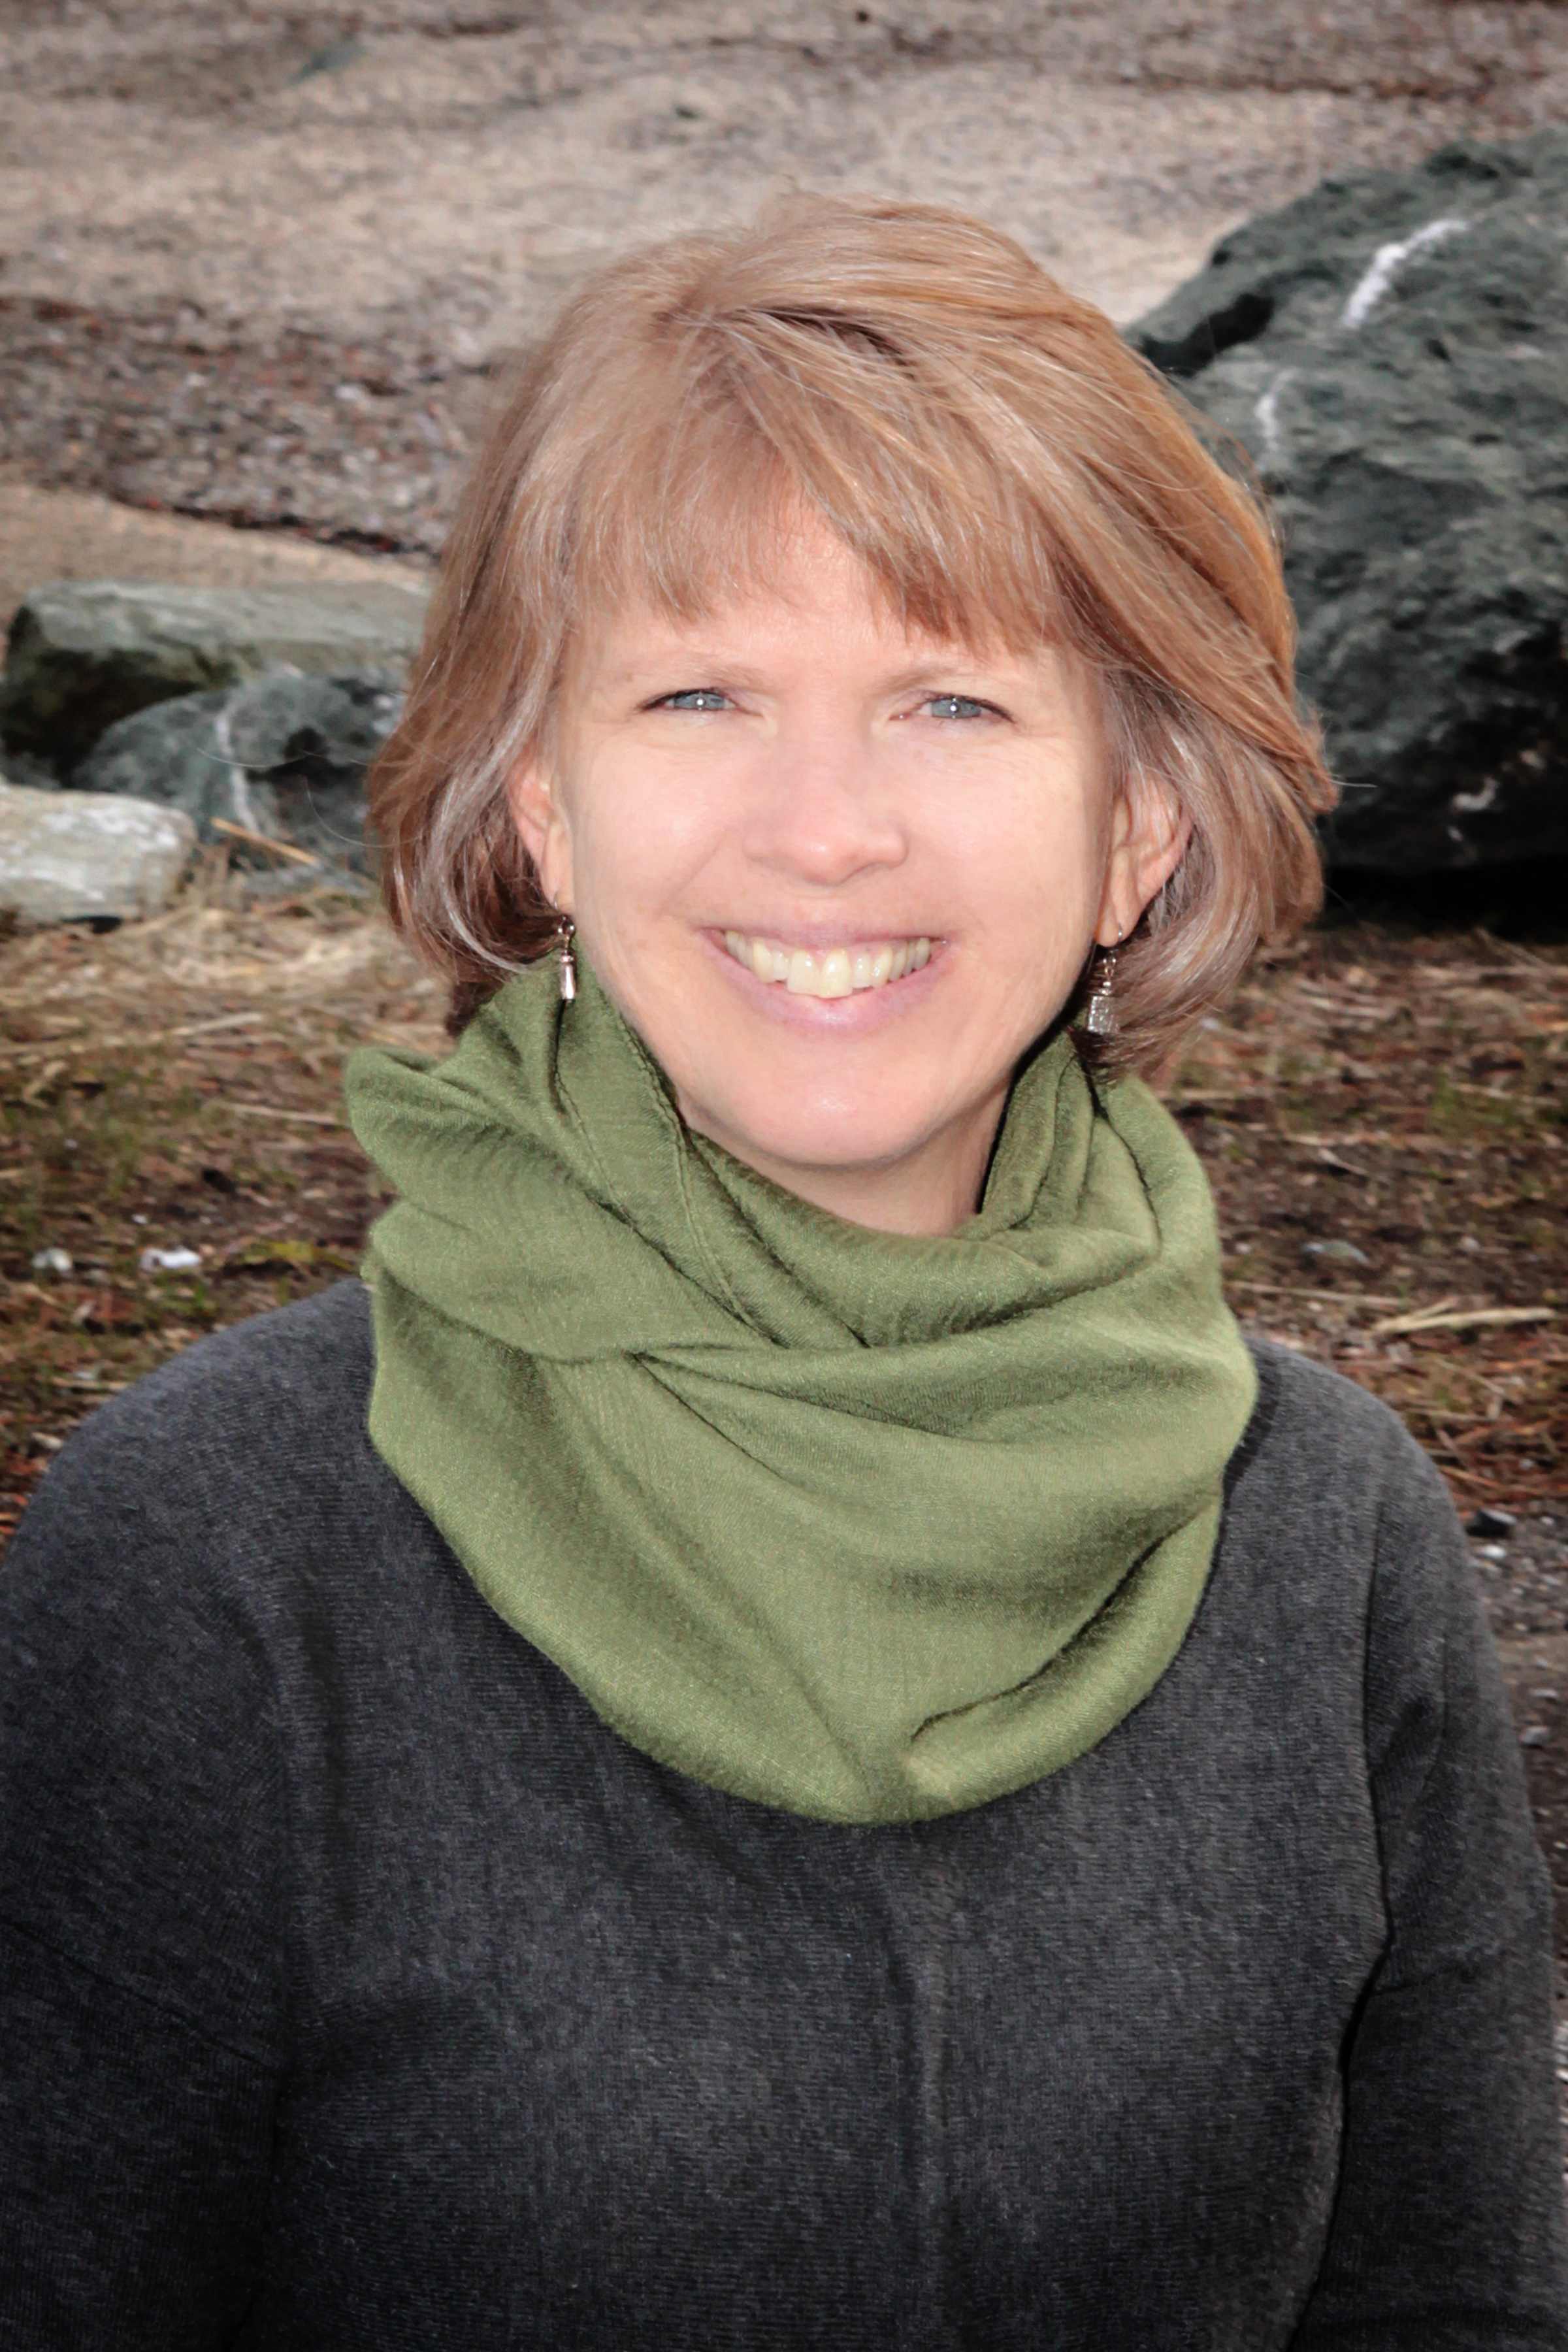 Brenda Henoch in front of rocks wearing a green scarf and gray sweater